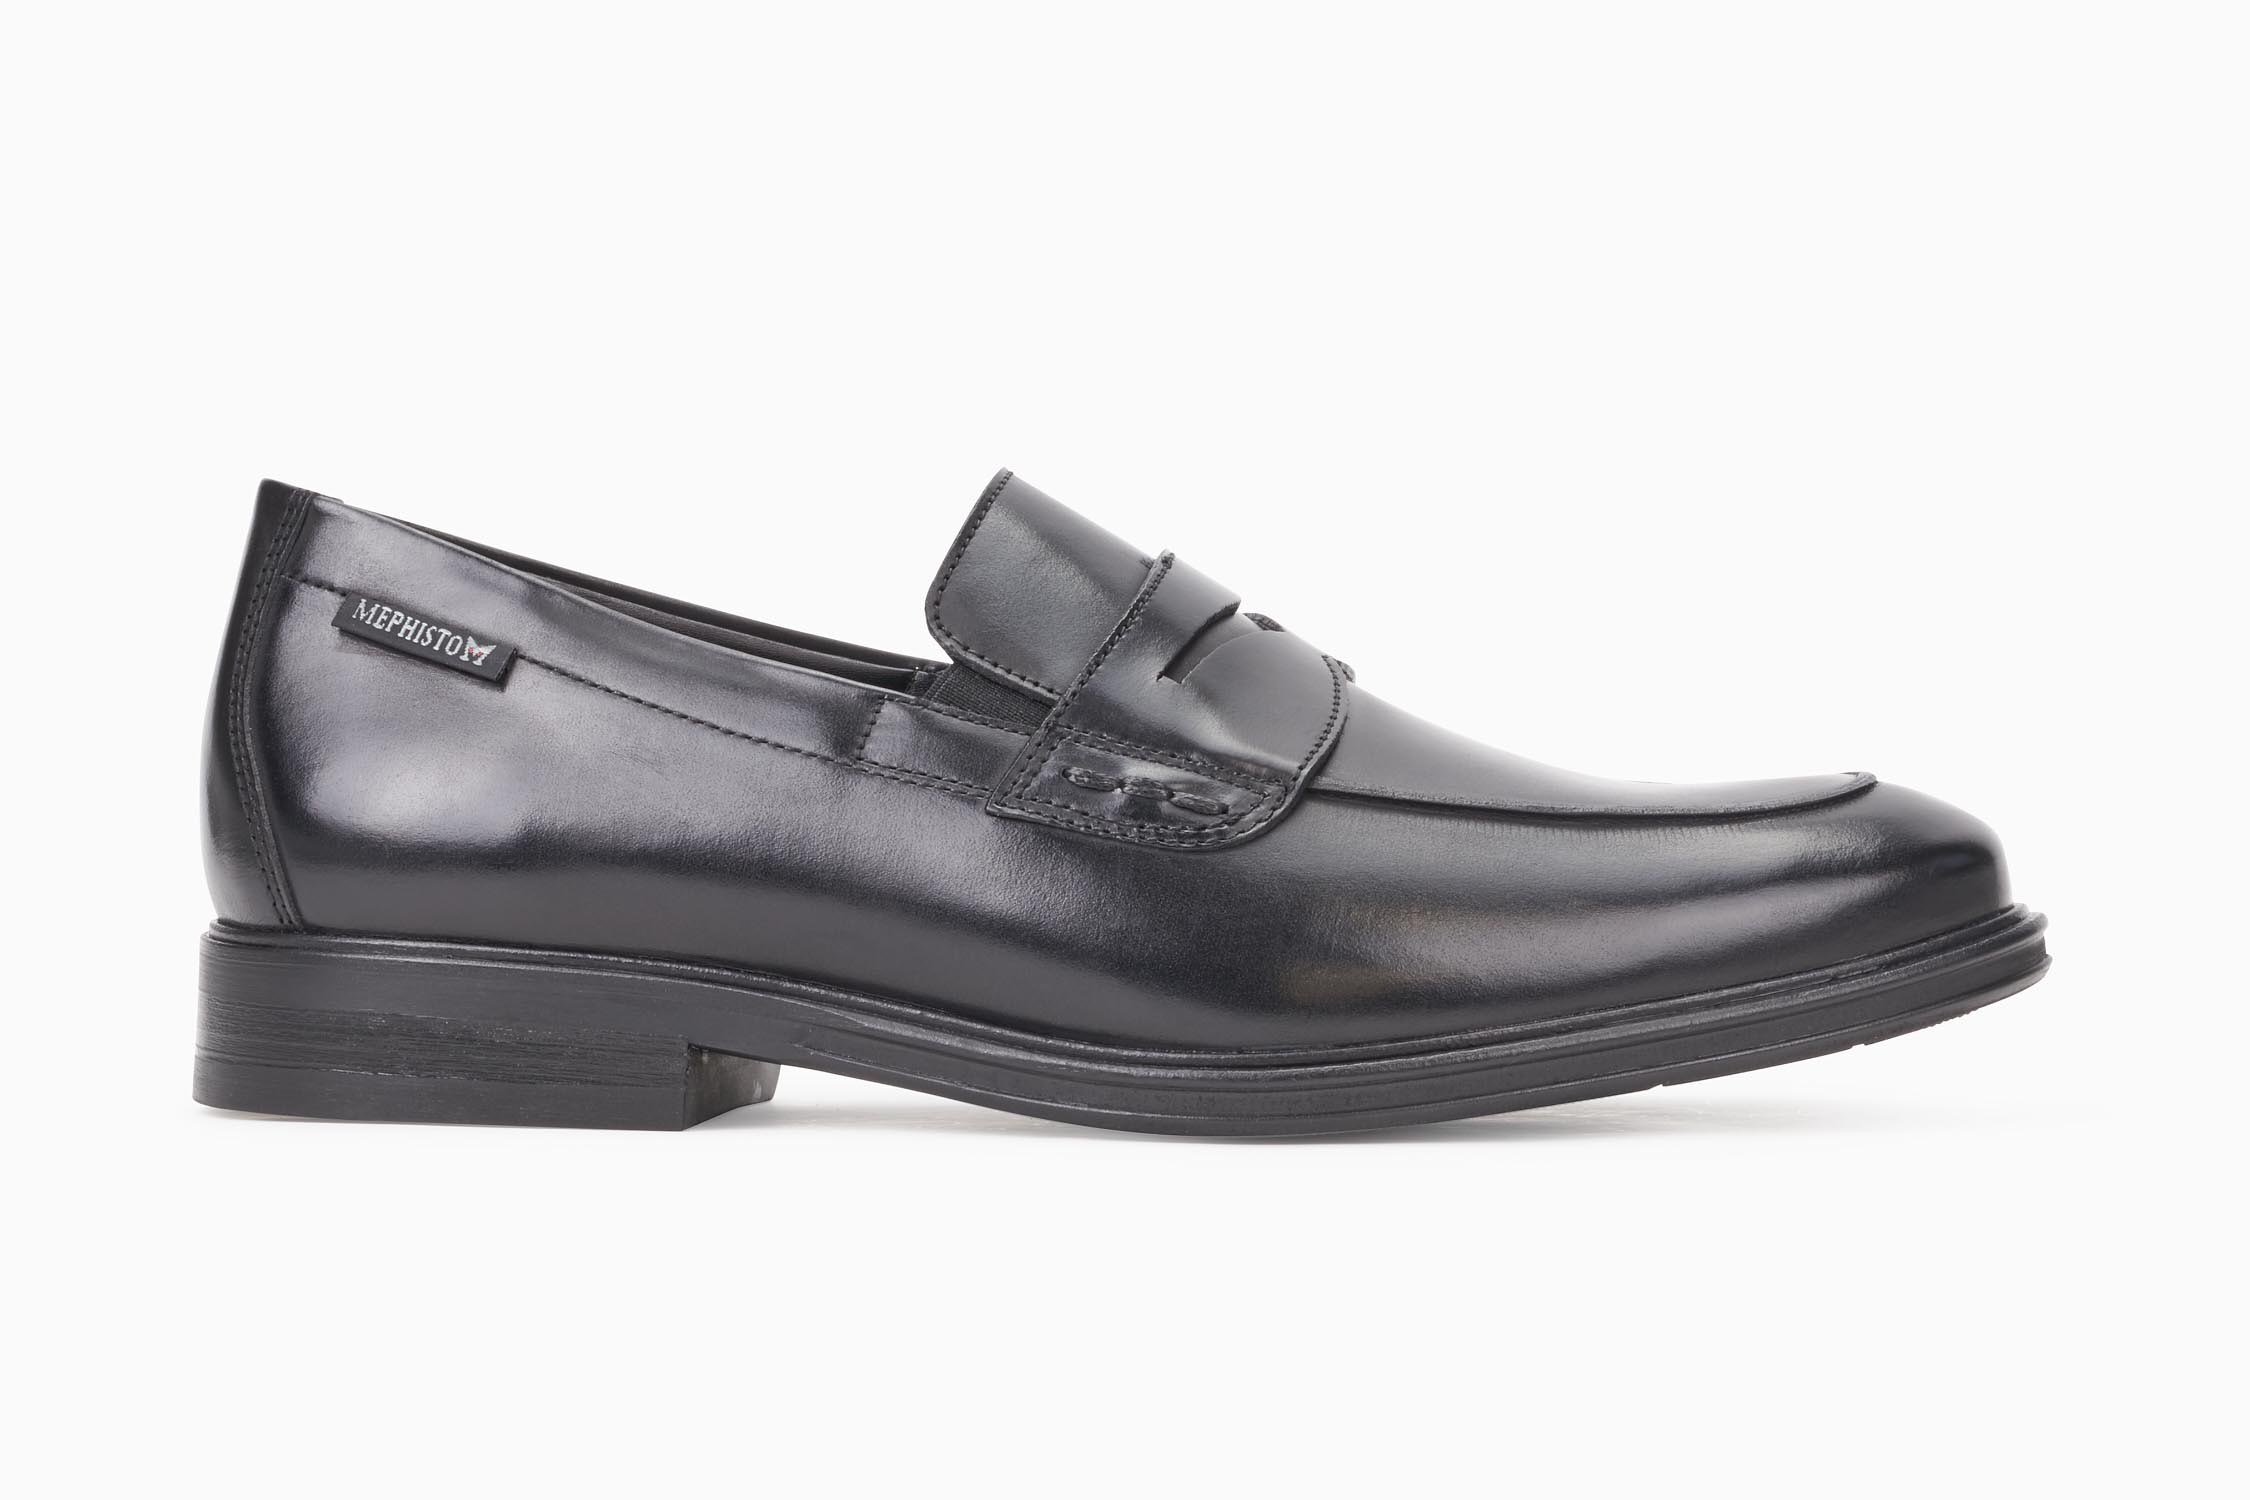 036656fc05 NILSON Slip-on - MEPHISTO Men's Loafers and Slip-ons   Smooth leather, black